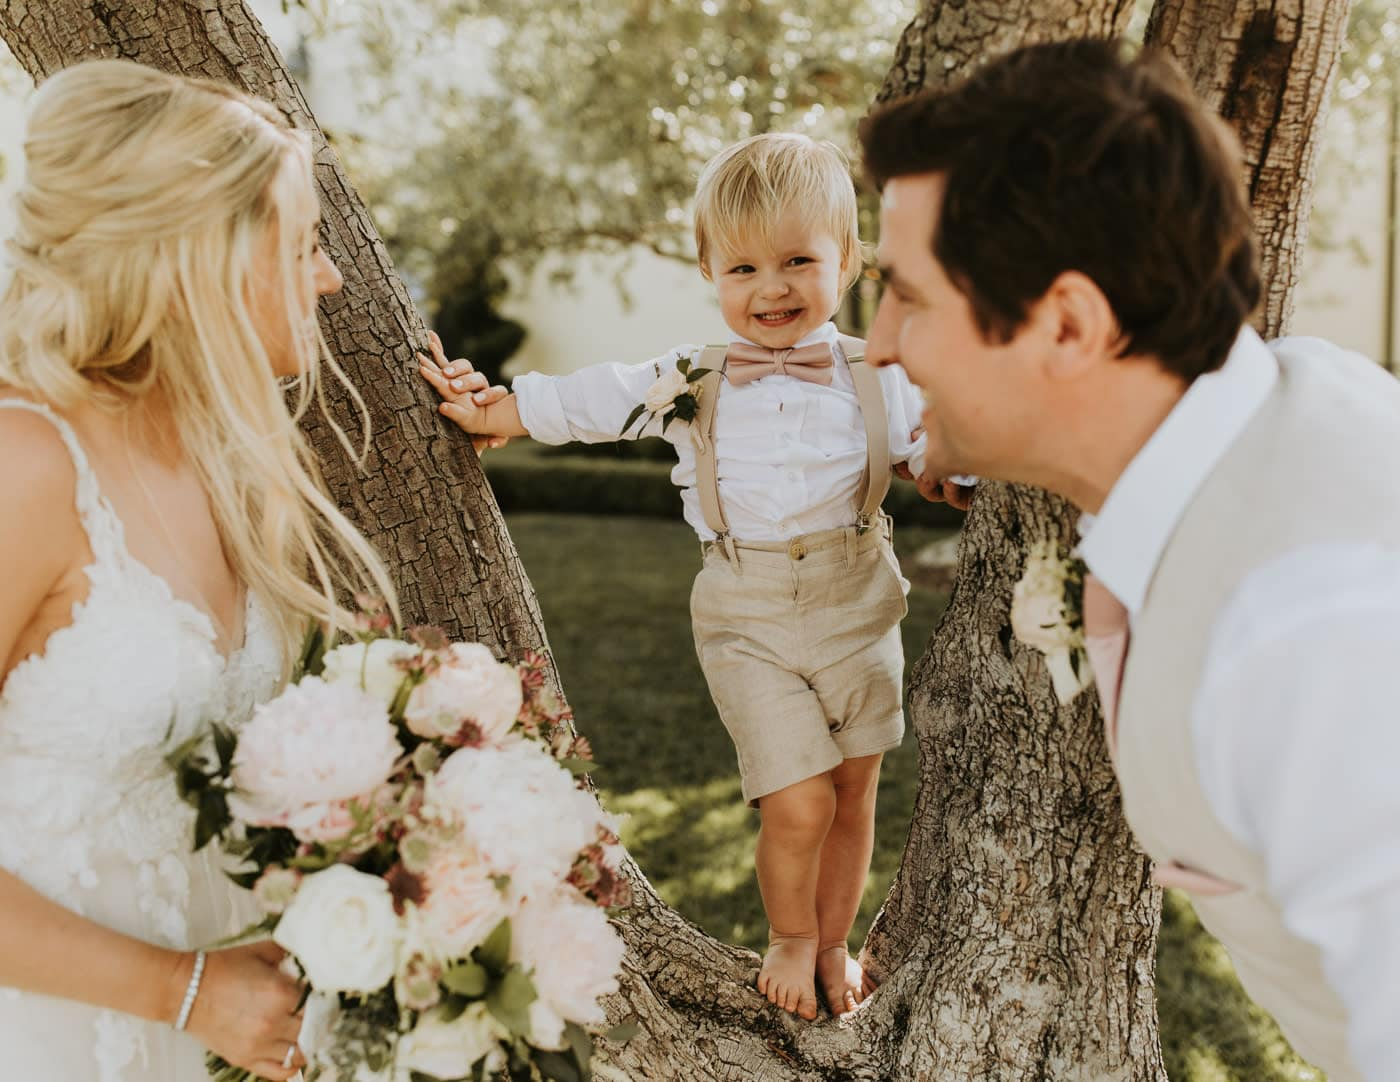 Real Weddings | Vinka Design | Real Brides Wearing Vinka Gowns | Camille and Aaron with little boy in tree